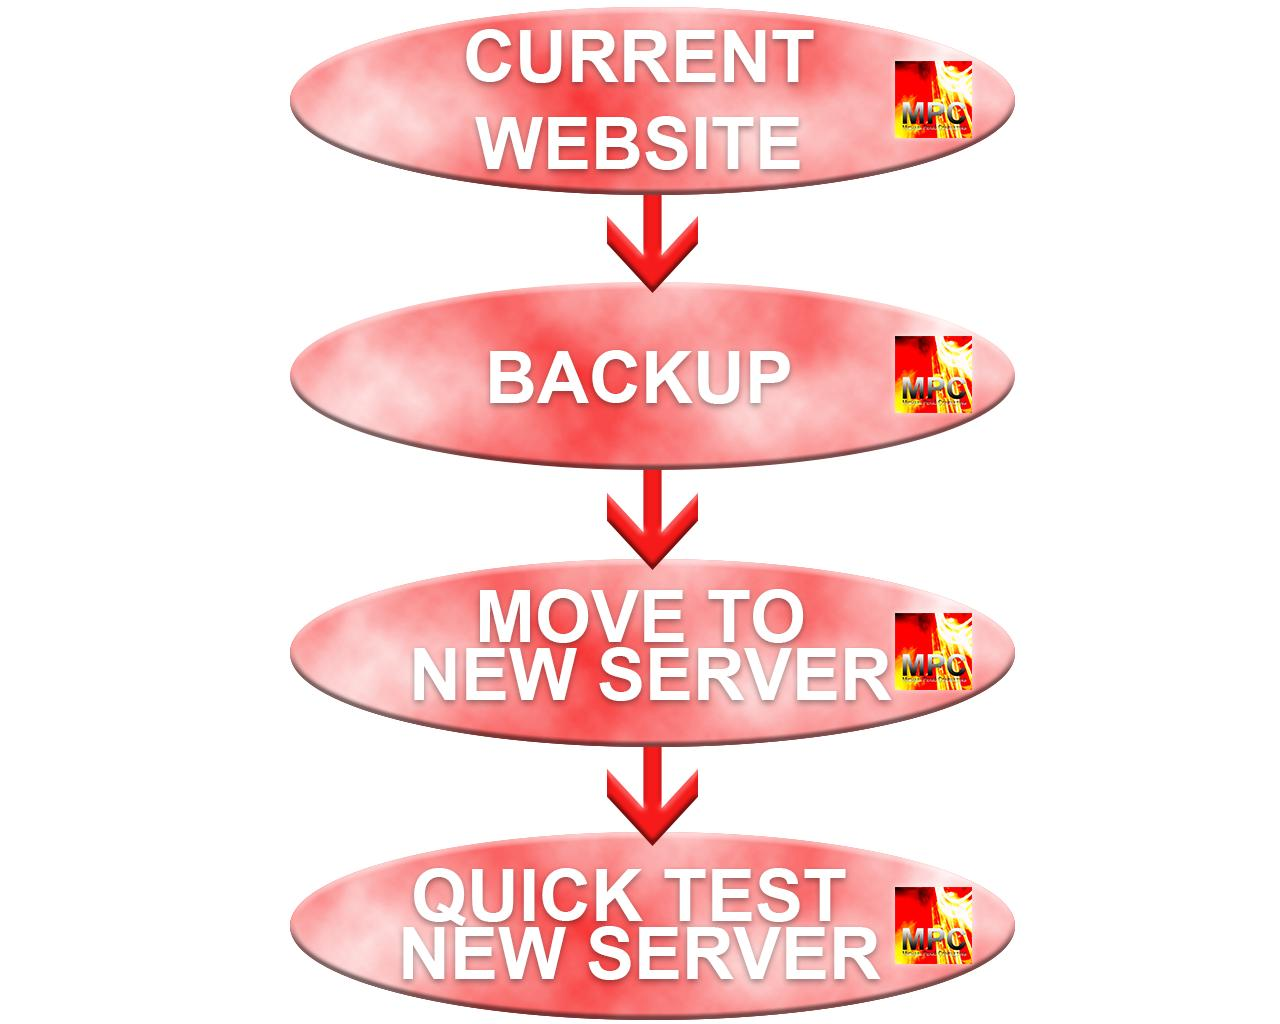 Moving WordPress Website To A New Server by mpek - 98483